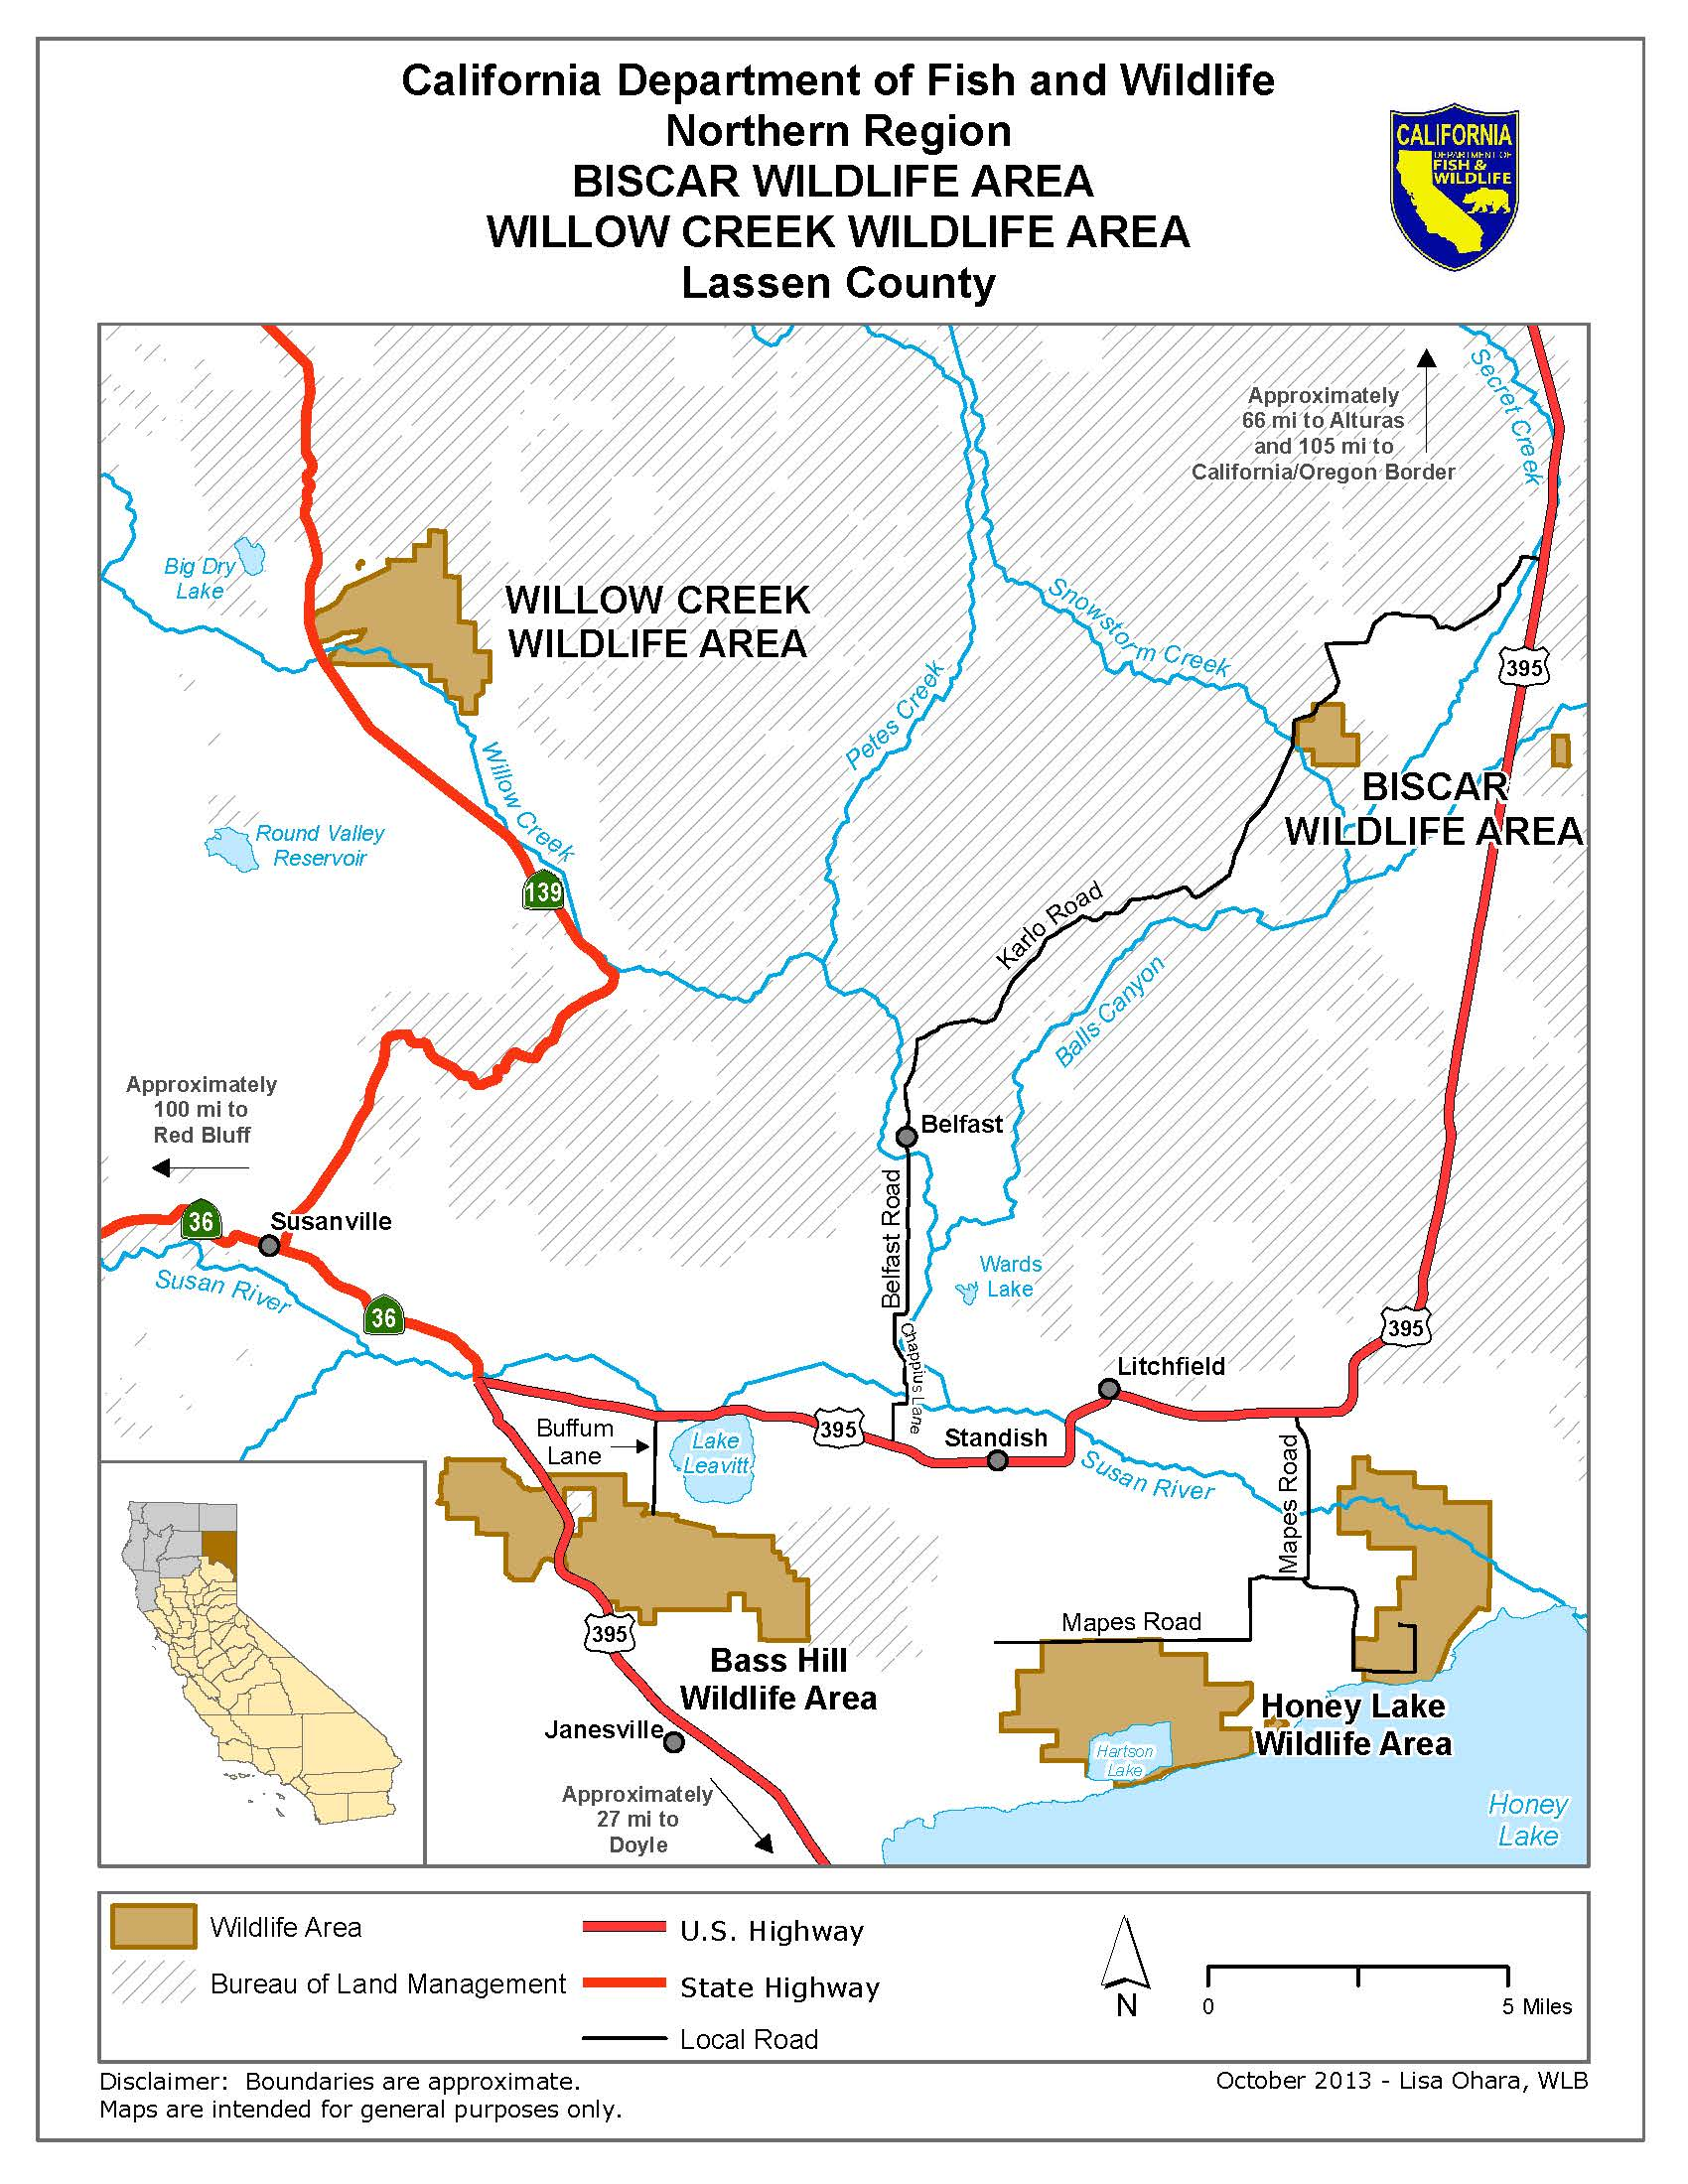 Biscar wildlife area legal labrador for California 1 day fishing license